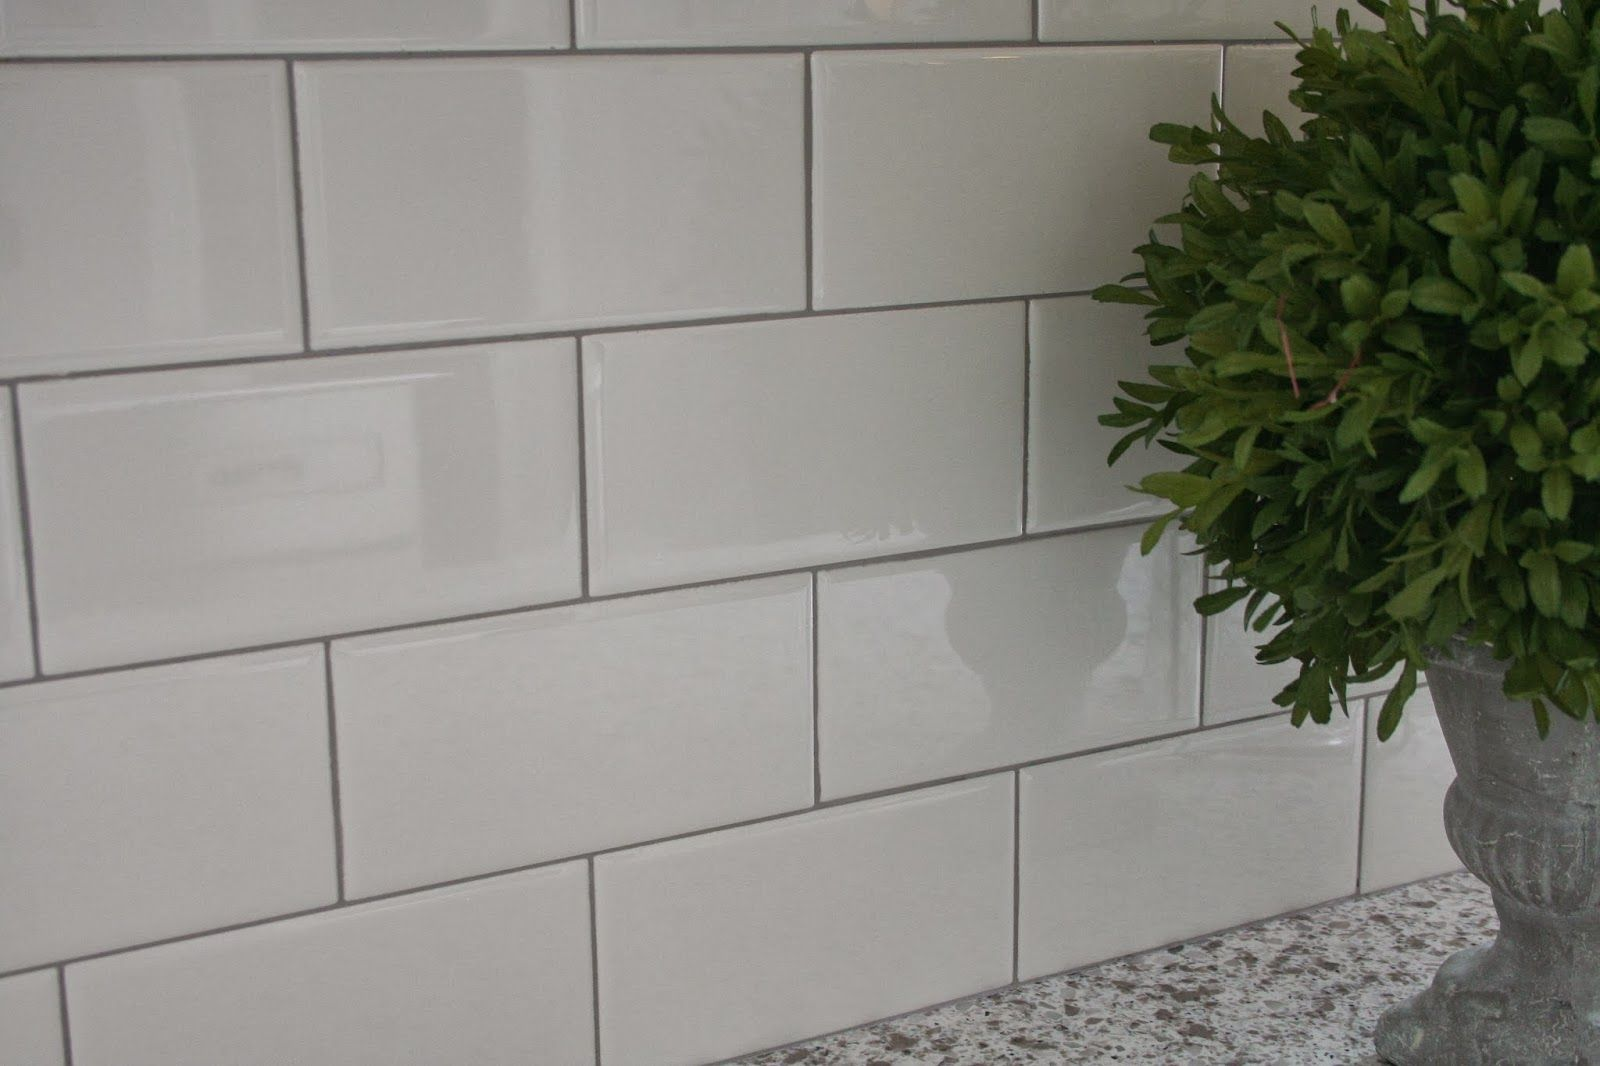 Delorean gray grout with white subway tile tile pinterest kitchen backsplash delorean gray grout with white subway tile dailygadgetfo Choice Image